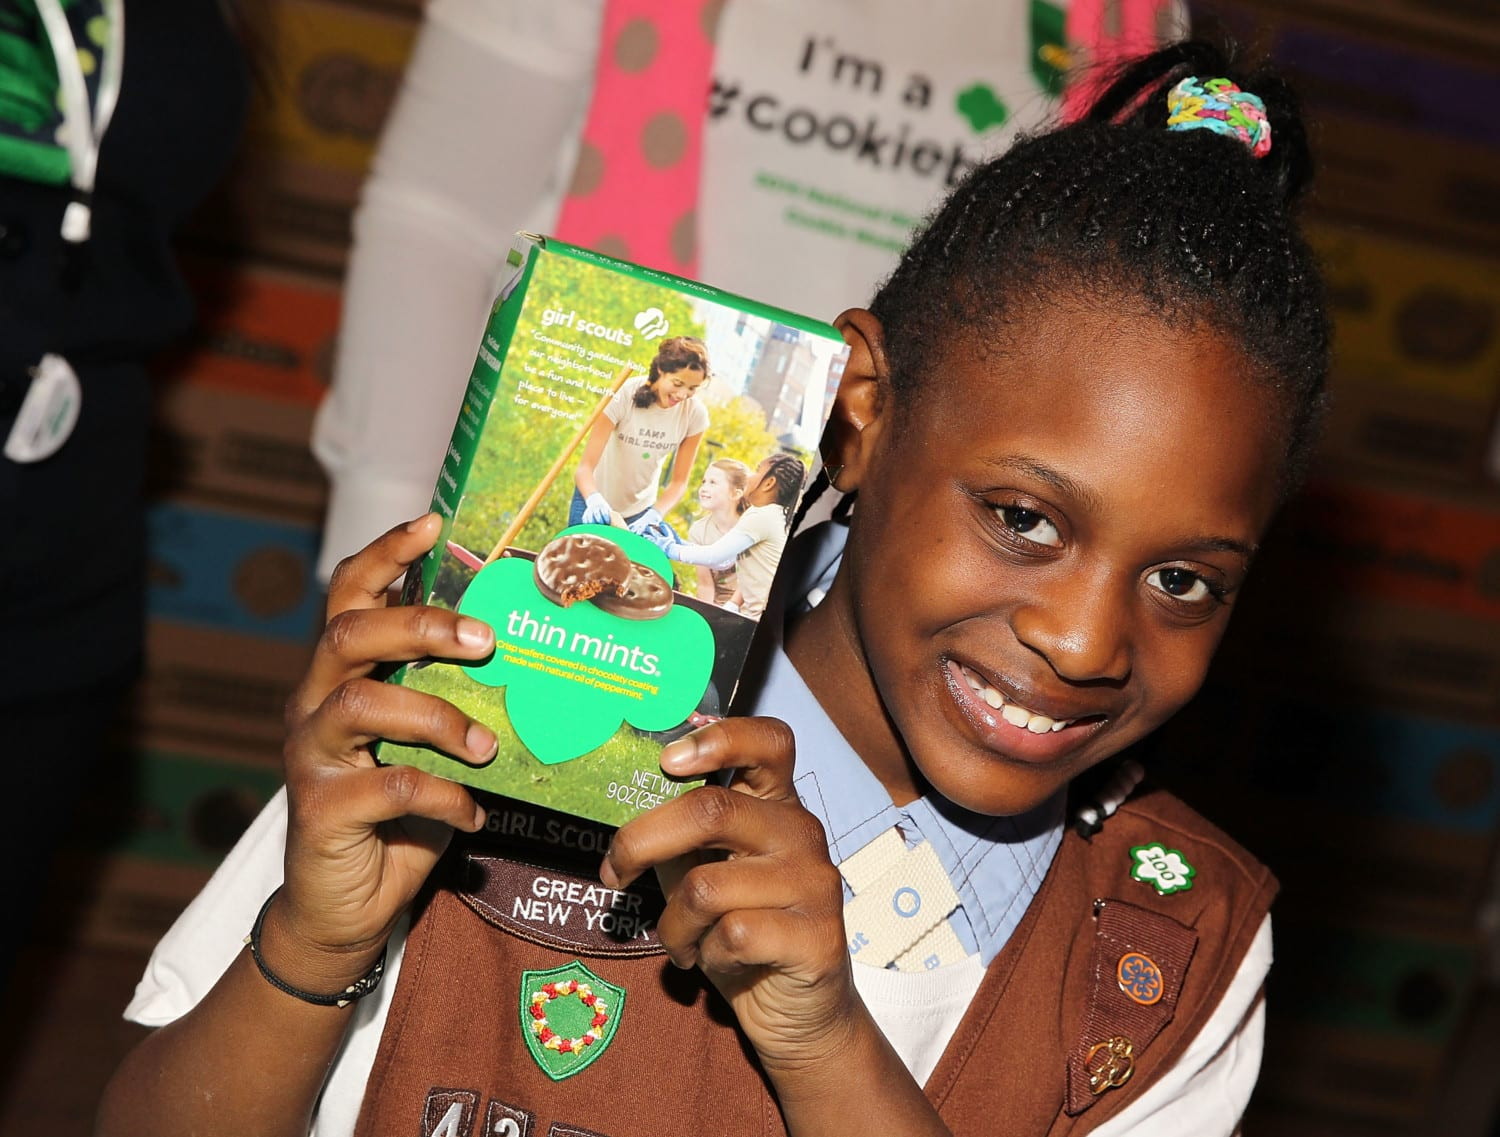 Girl Scout cookie photo